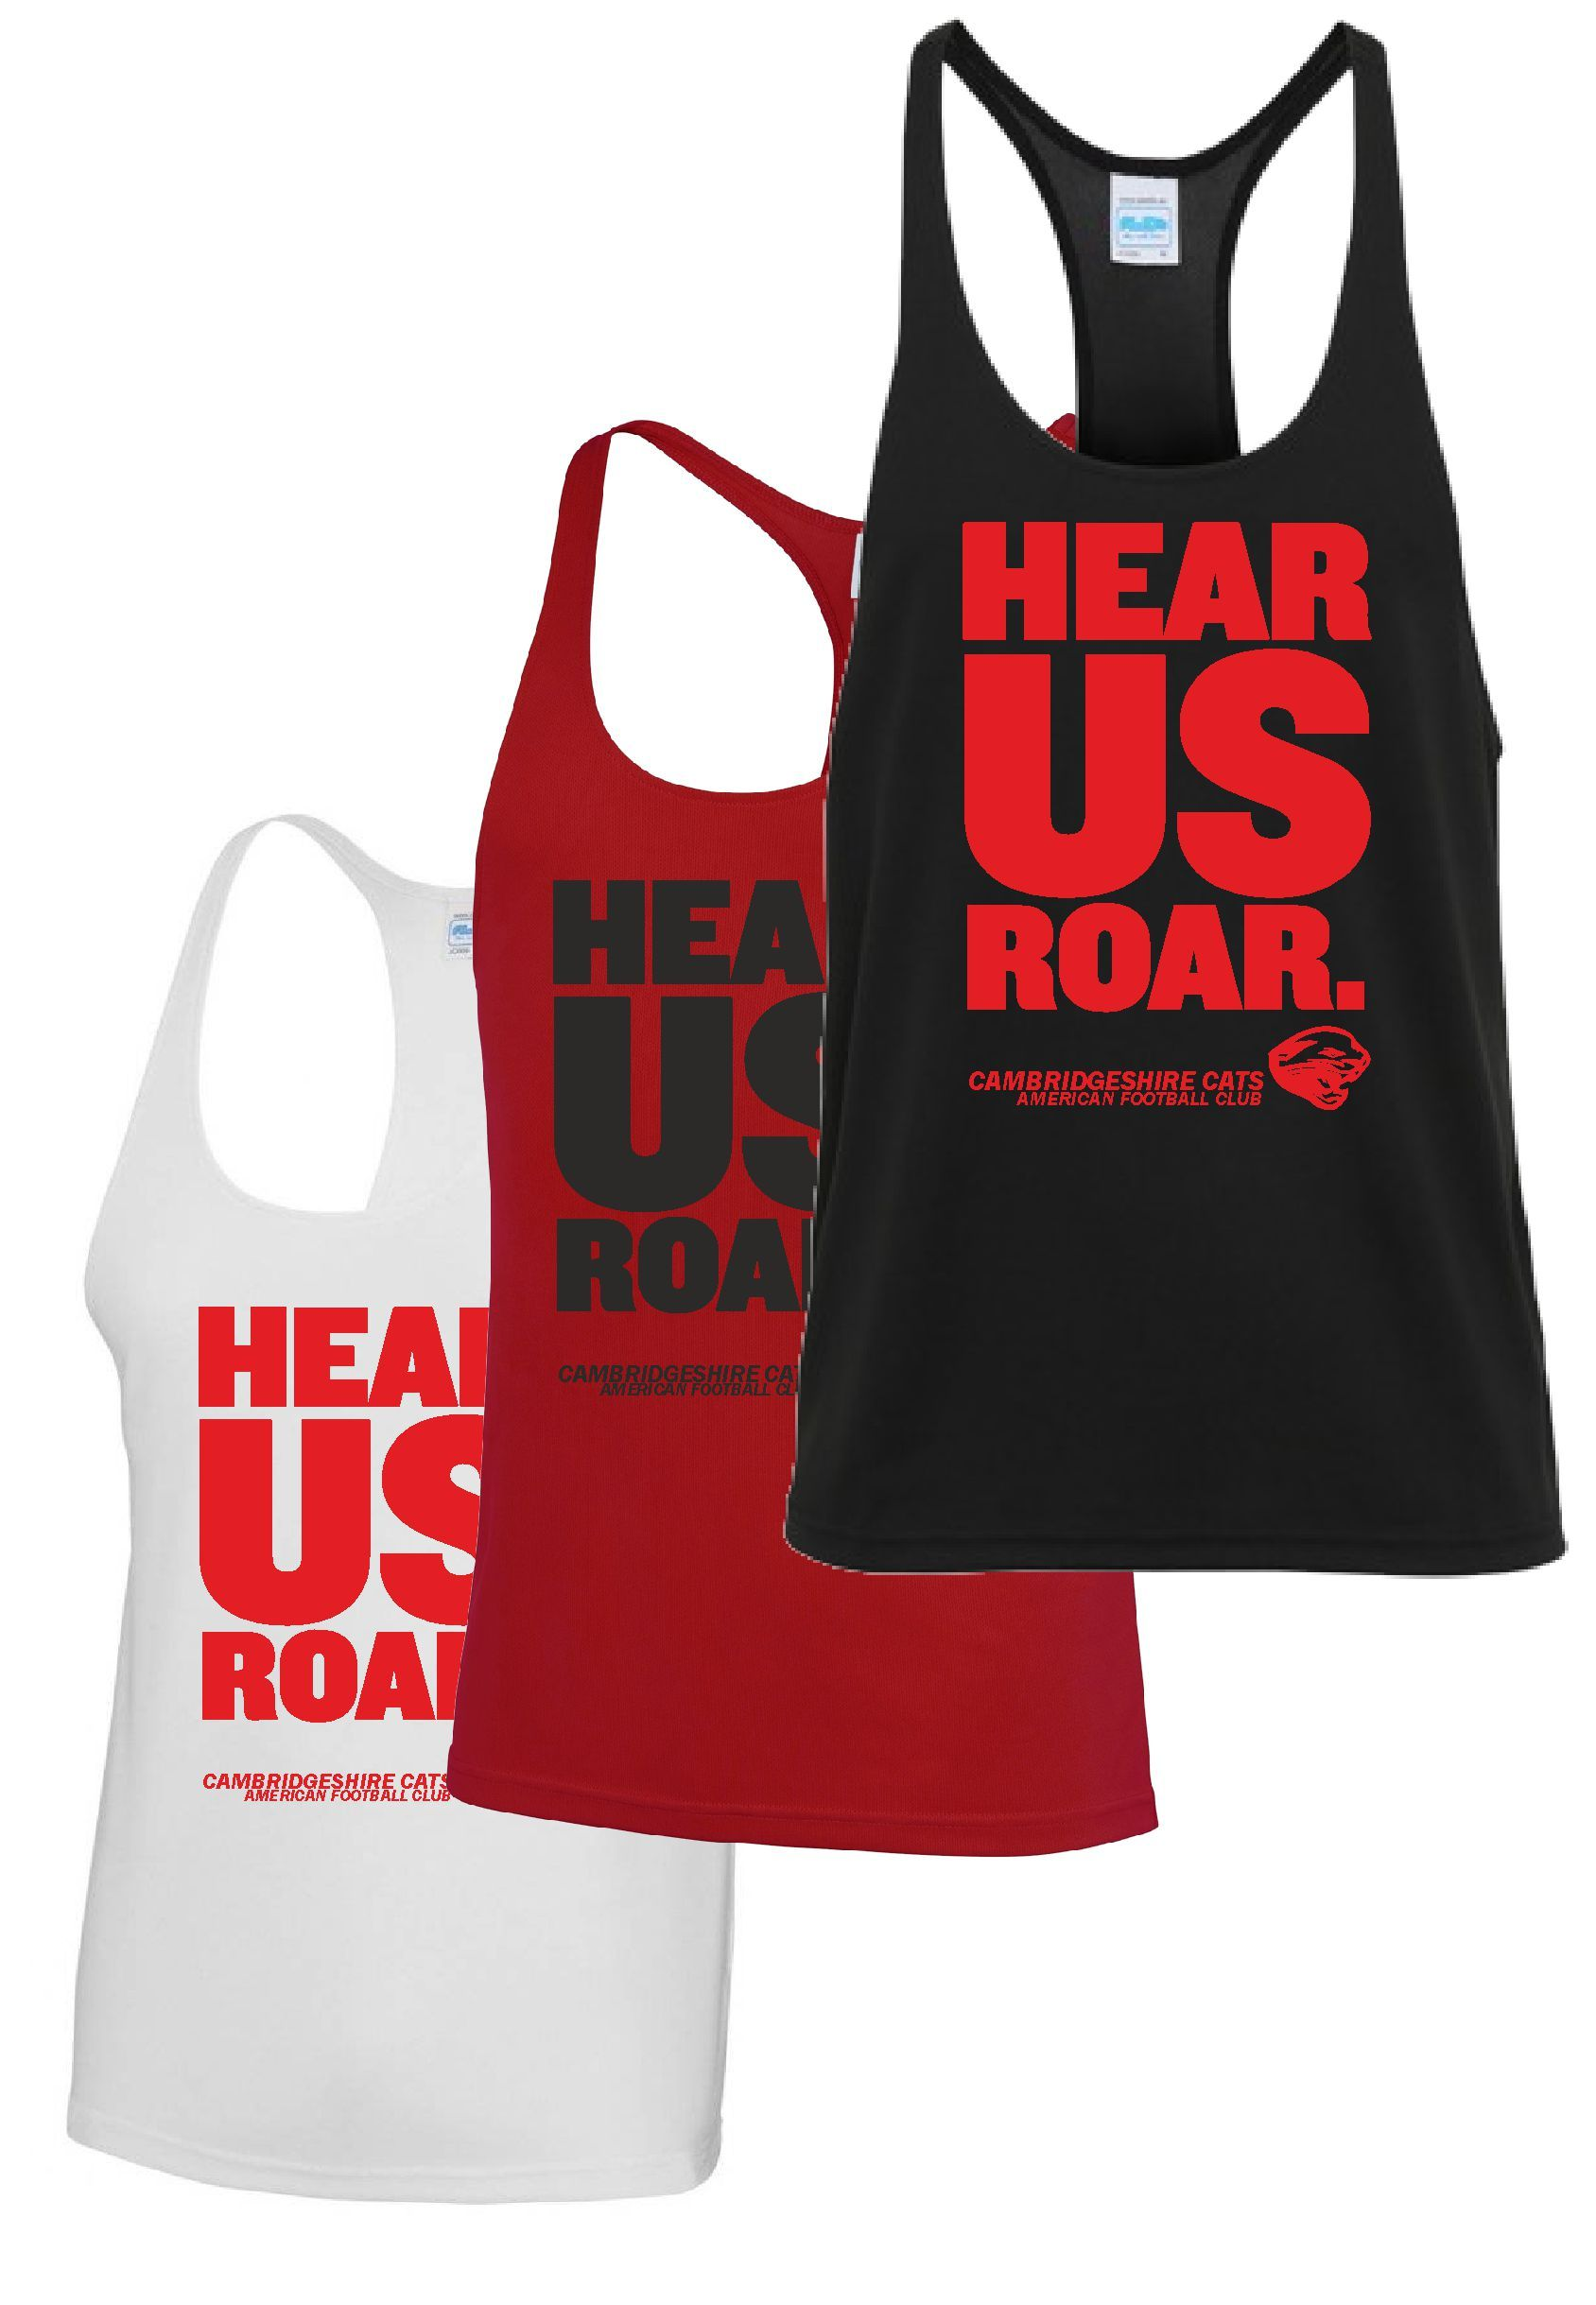 Cats - 'Hear Us Roar' Muscle Vest